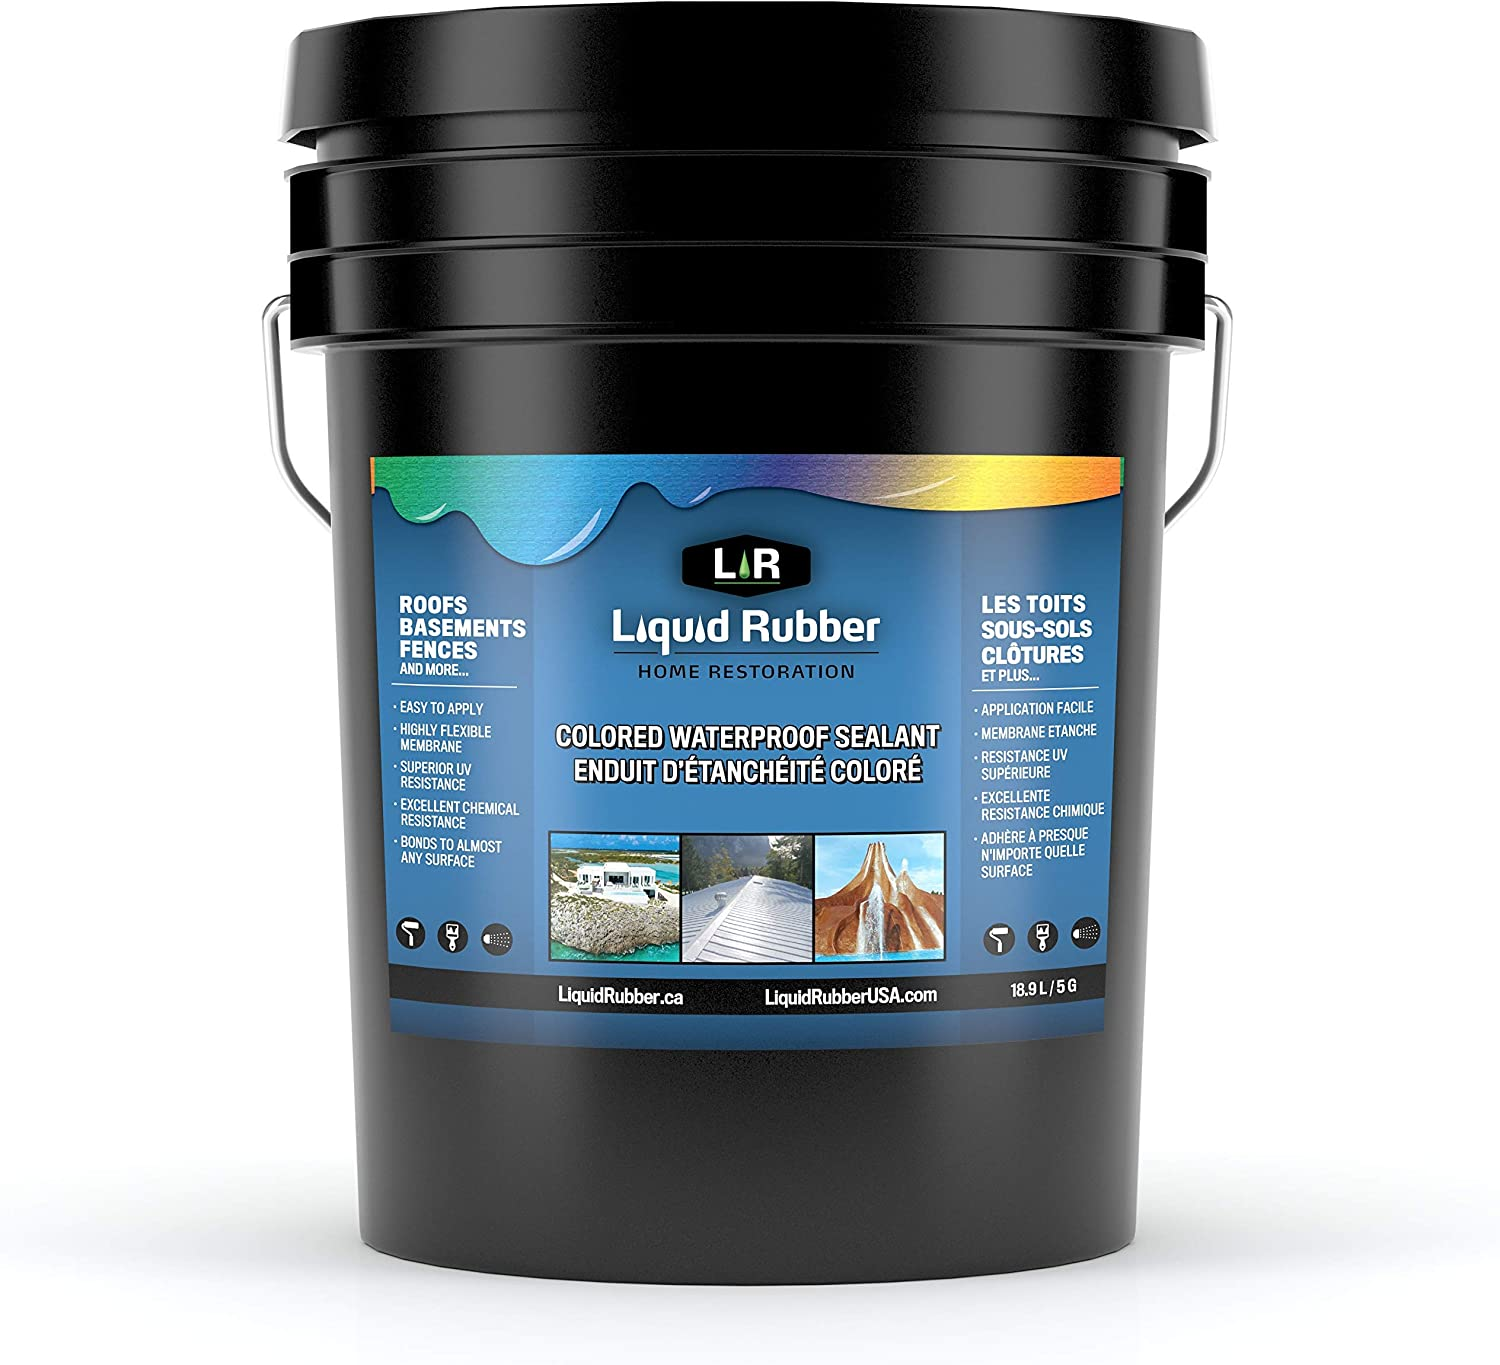 Liquid Rubber Color Waterproof Sealant - Indoor & Outdoor Coating - Easy to Apply - Water Based - White, 5 Gallon